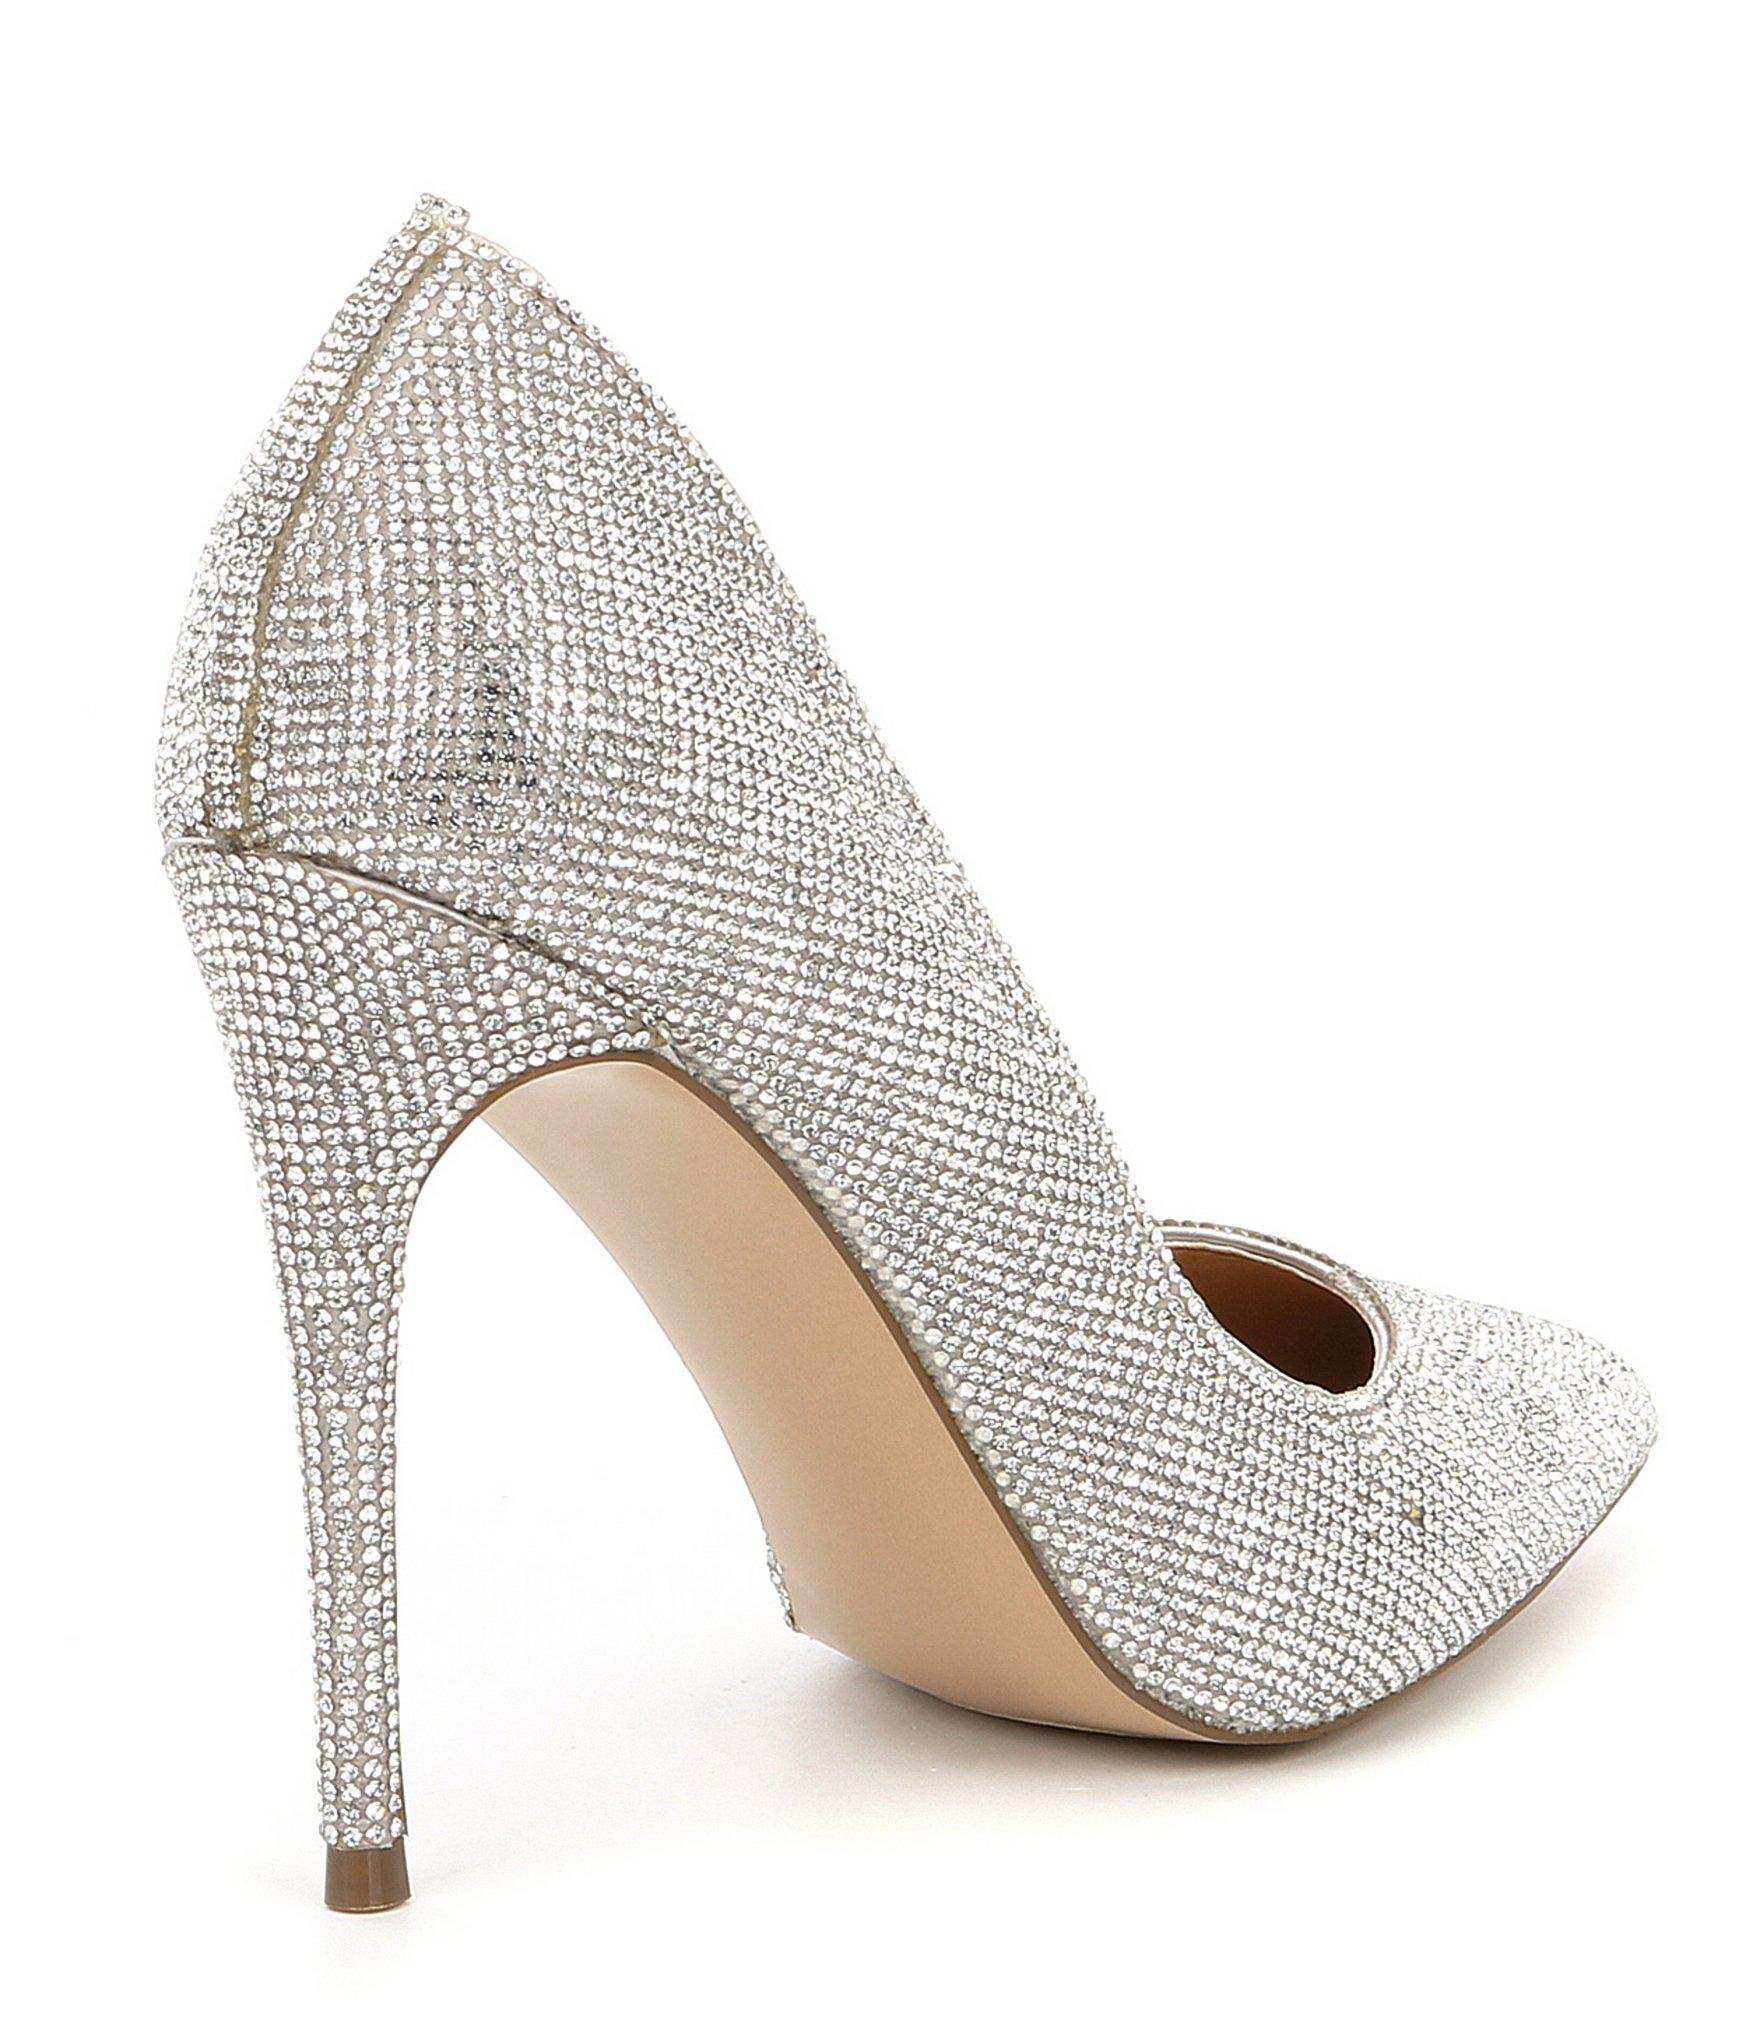 0cb610d5290e Steve Madden - Multicolor Daisie Crystal Jeweled Pointed Toe Pumps - Lyst.  View fullscreen